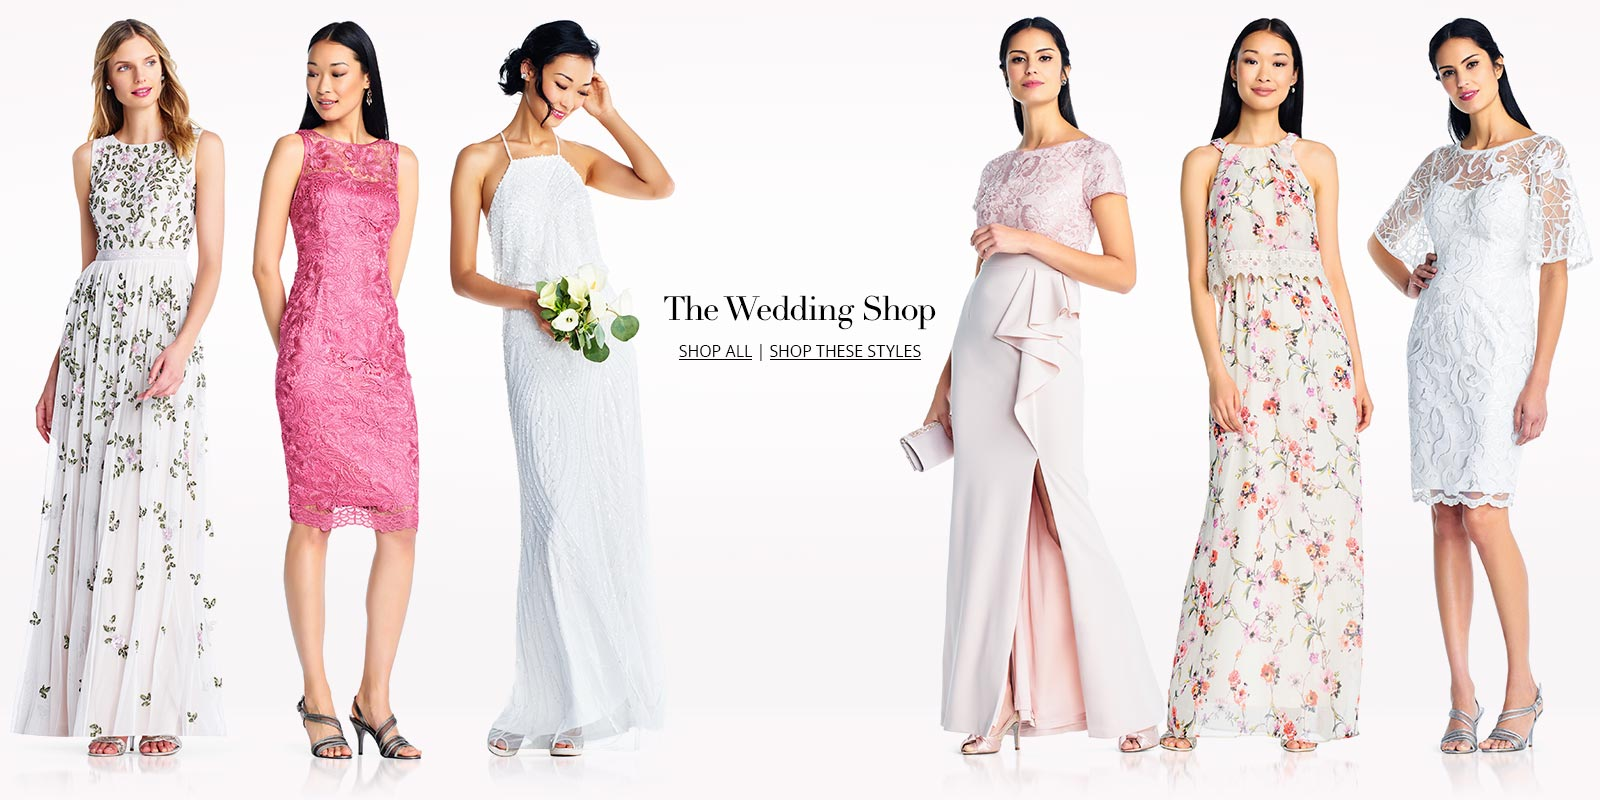 Six women wearing Adrianna papell bridal dresses